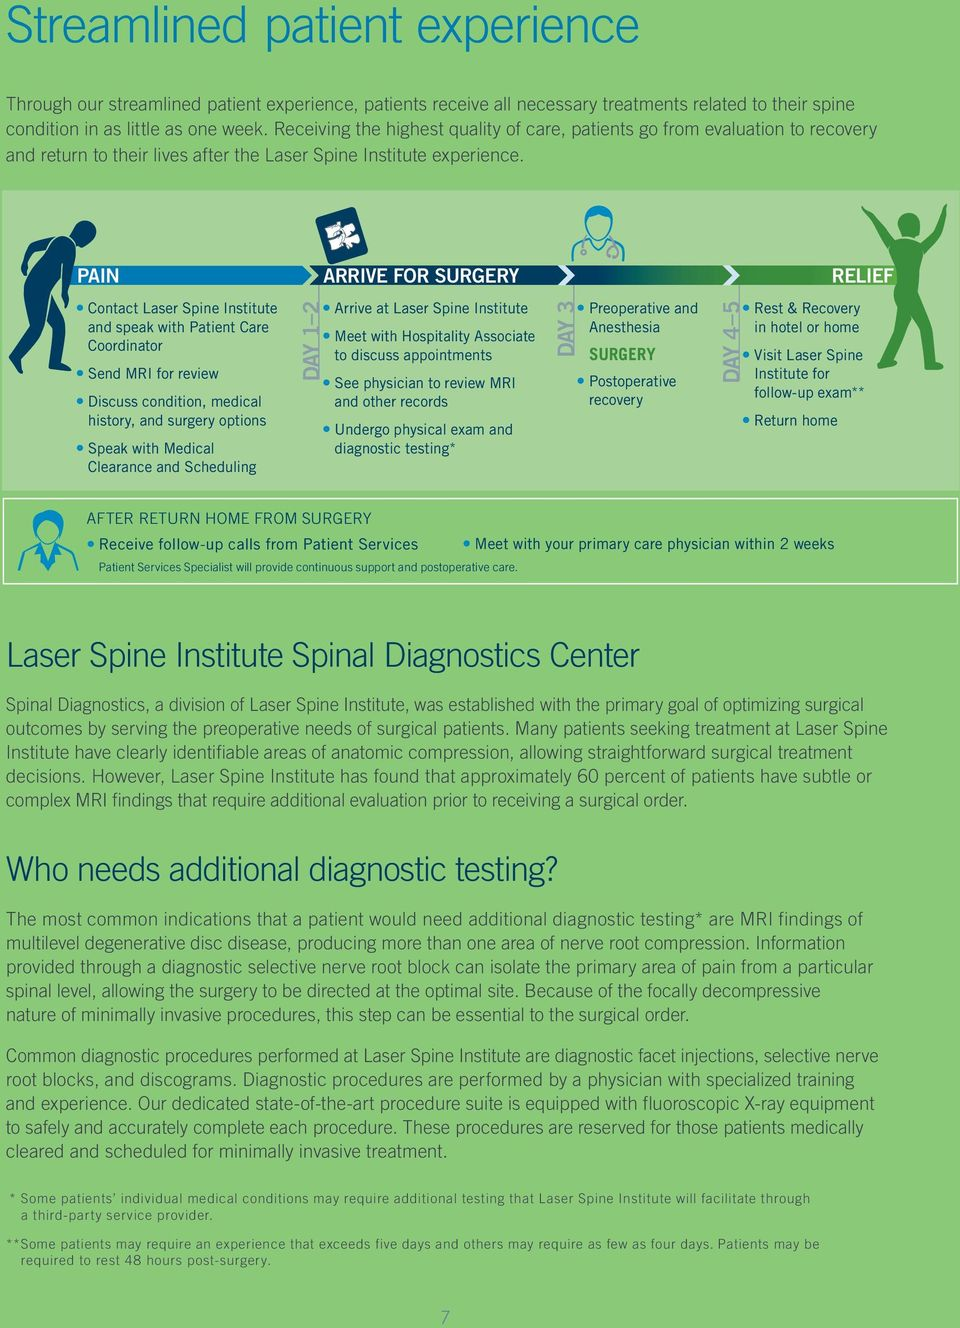 PAIN ARRIVE FOR SURGERY RELIEF Contact Laser Spine Institute and speak with Patient Care Coordinator Send MRI for review Discuss condition, medical history, and surgery options Speak with Medical